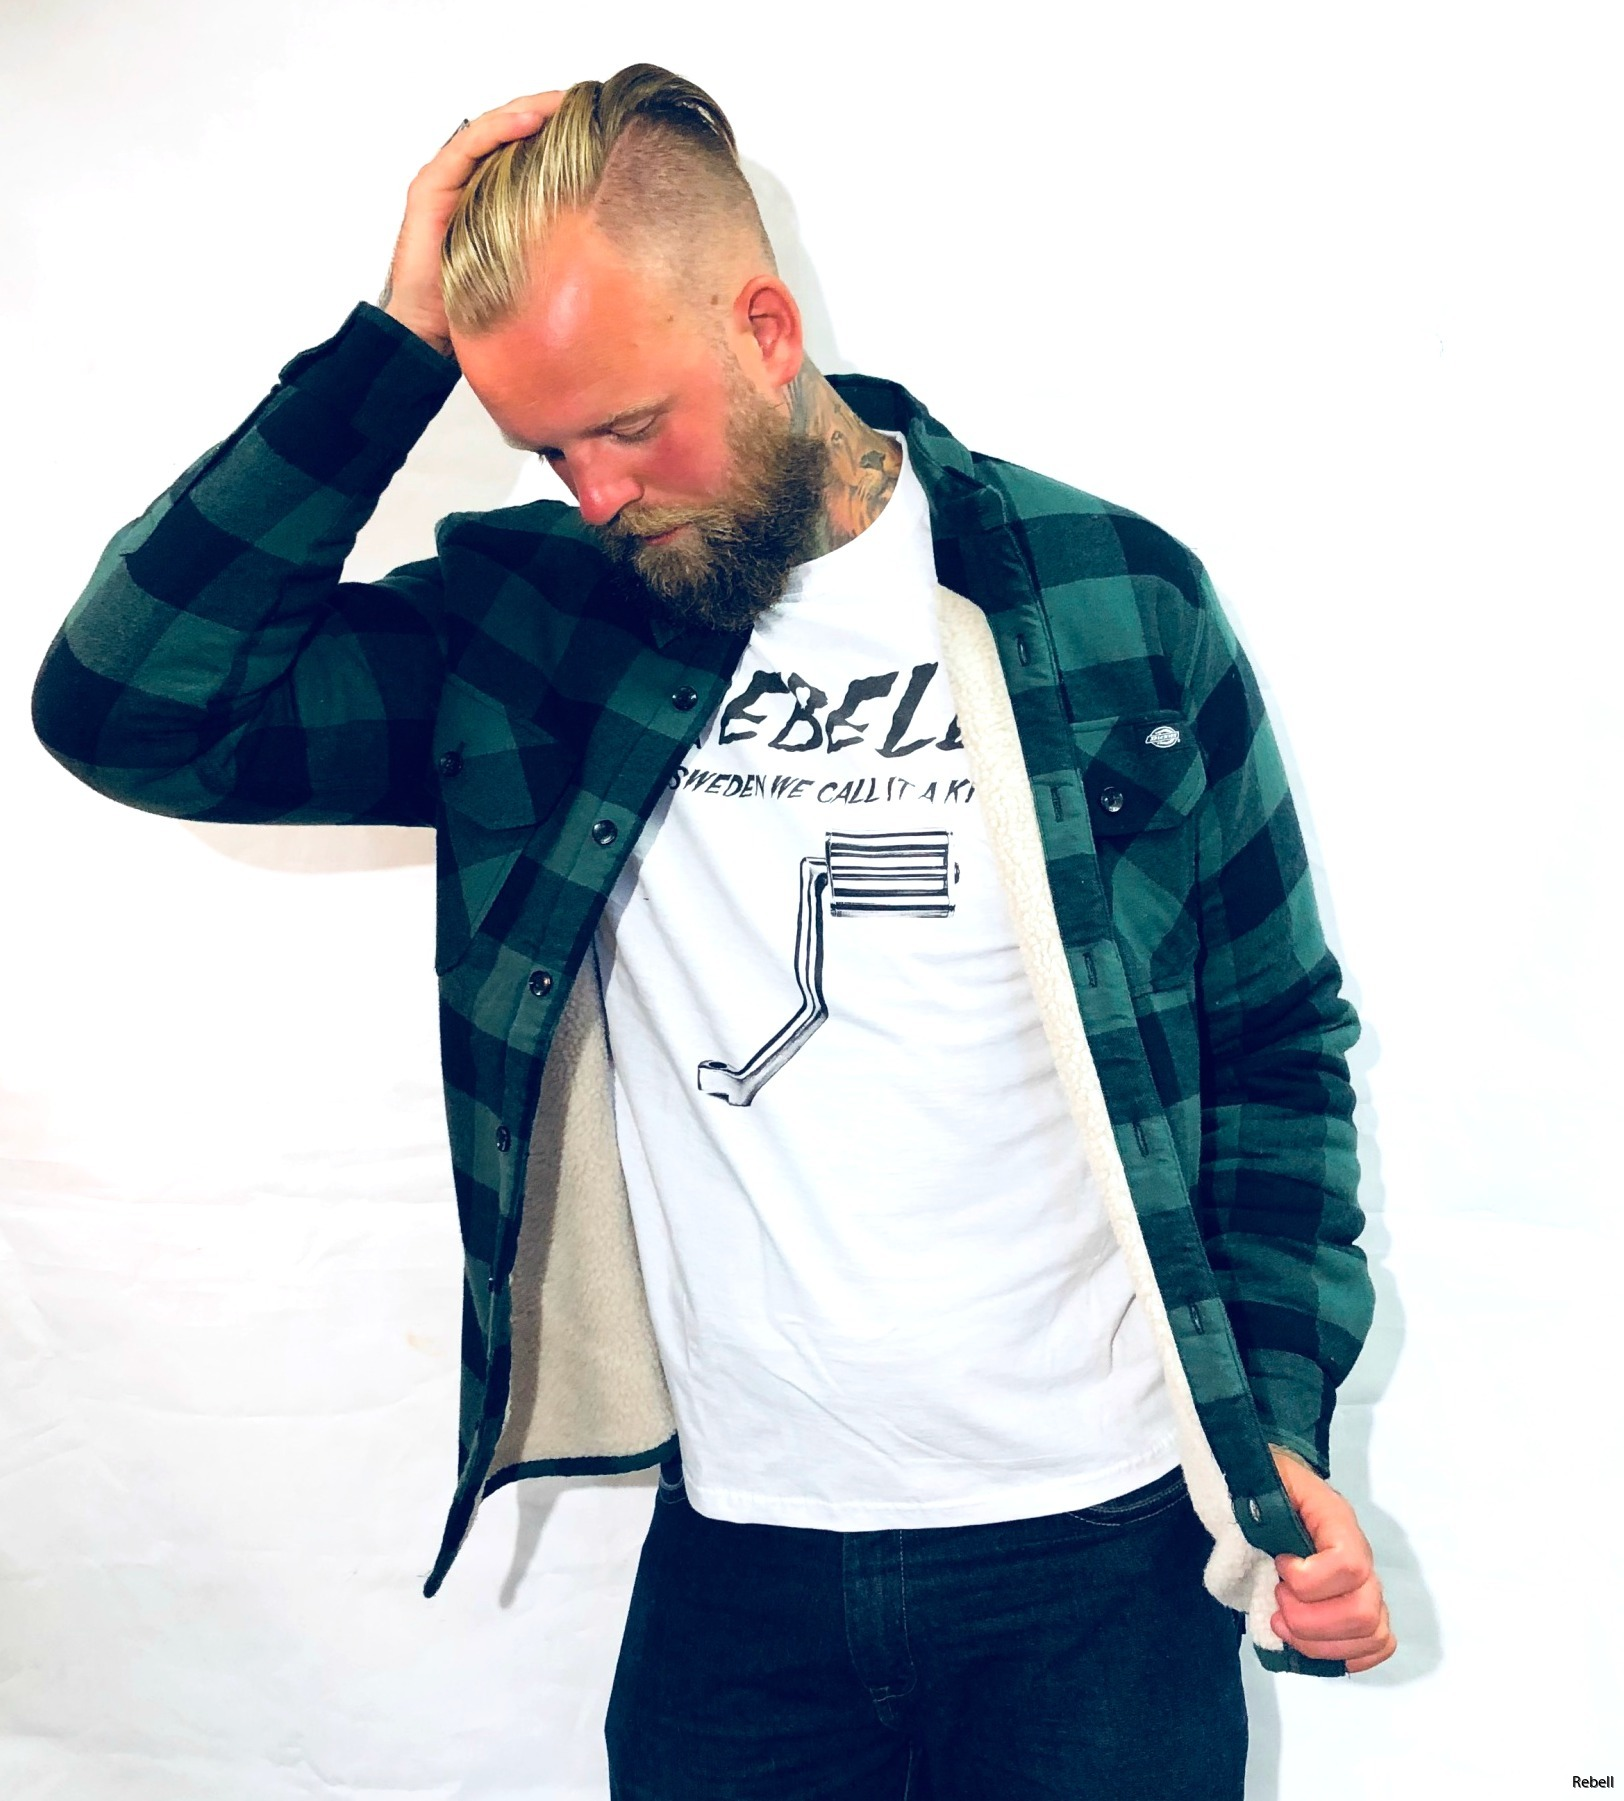 Dickies Fodrad Flanell jacka rebell www.rebellclothes.se